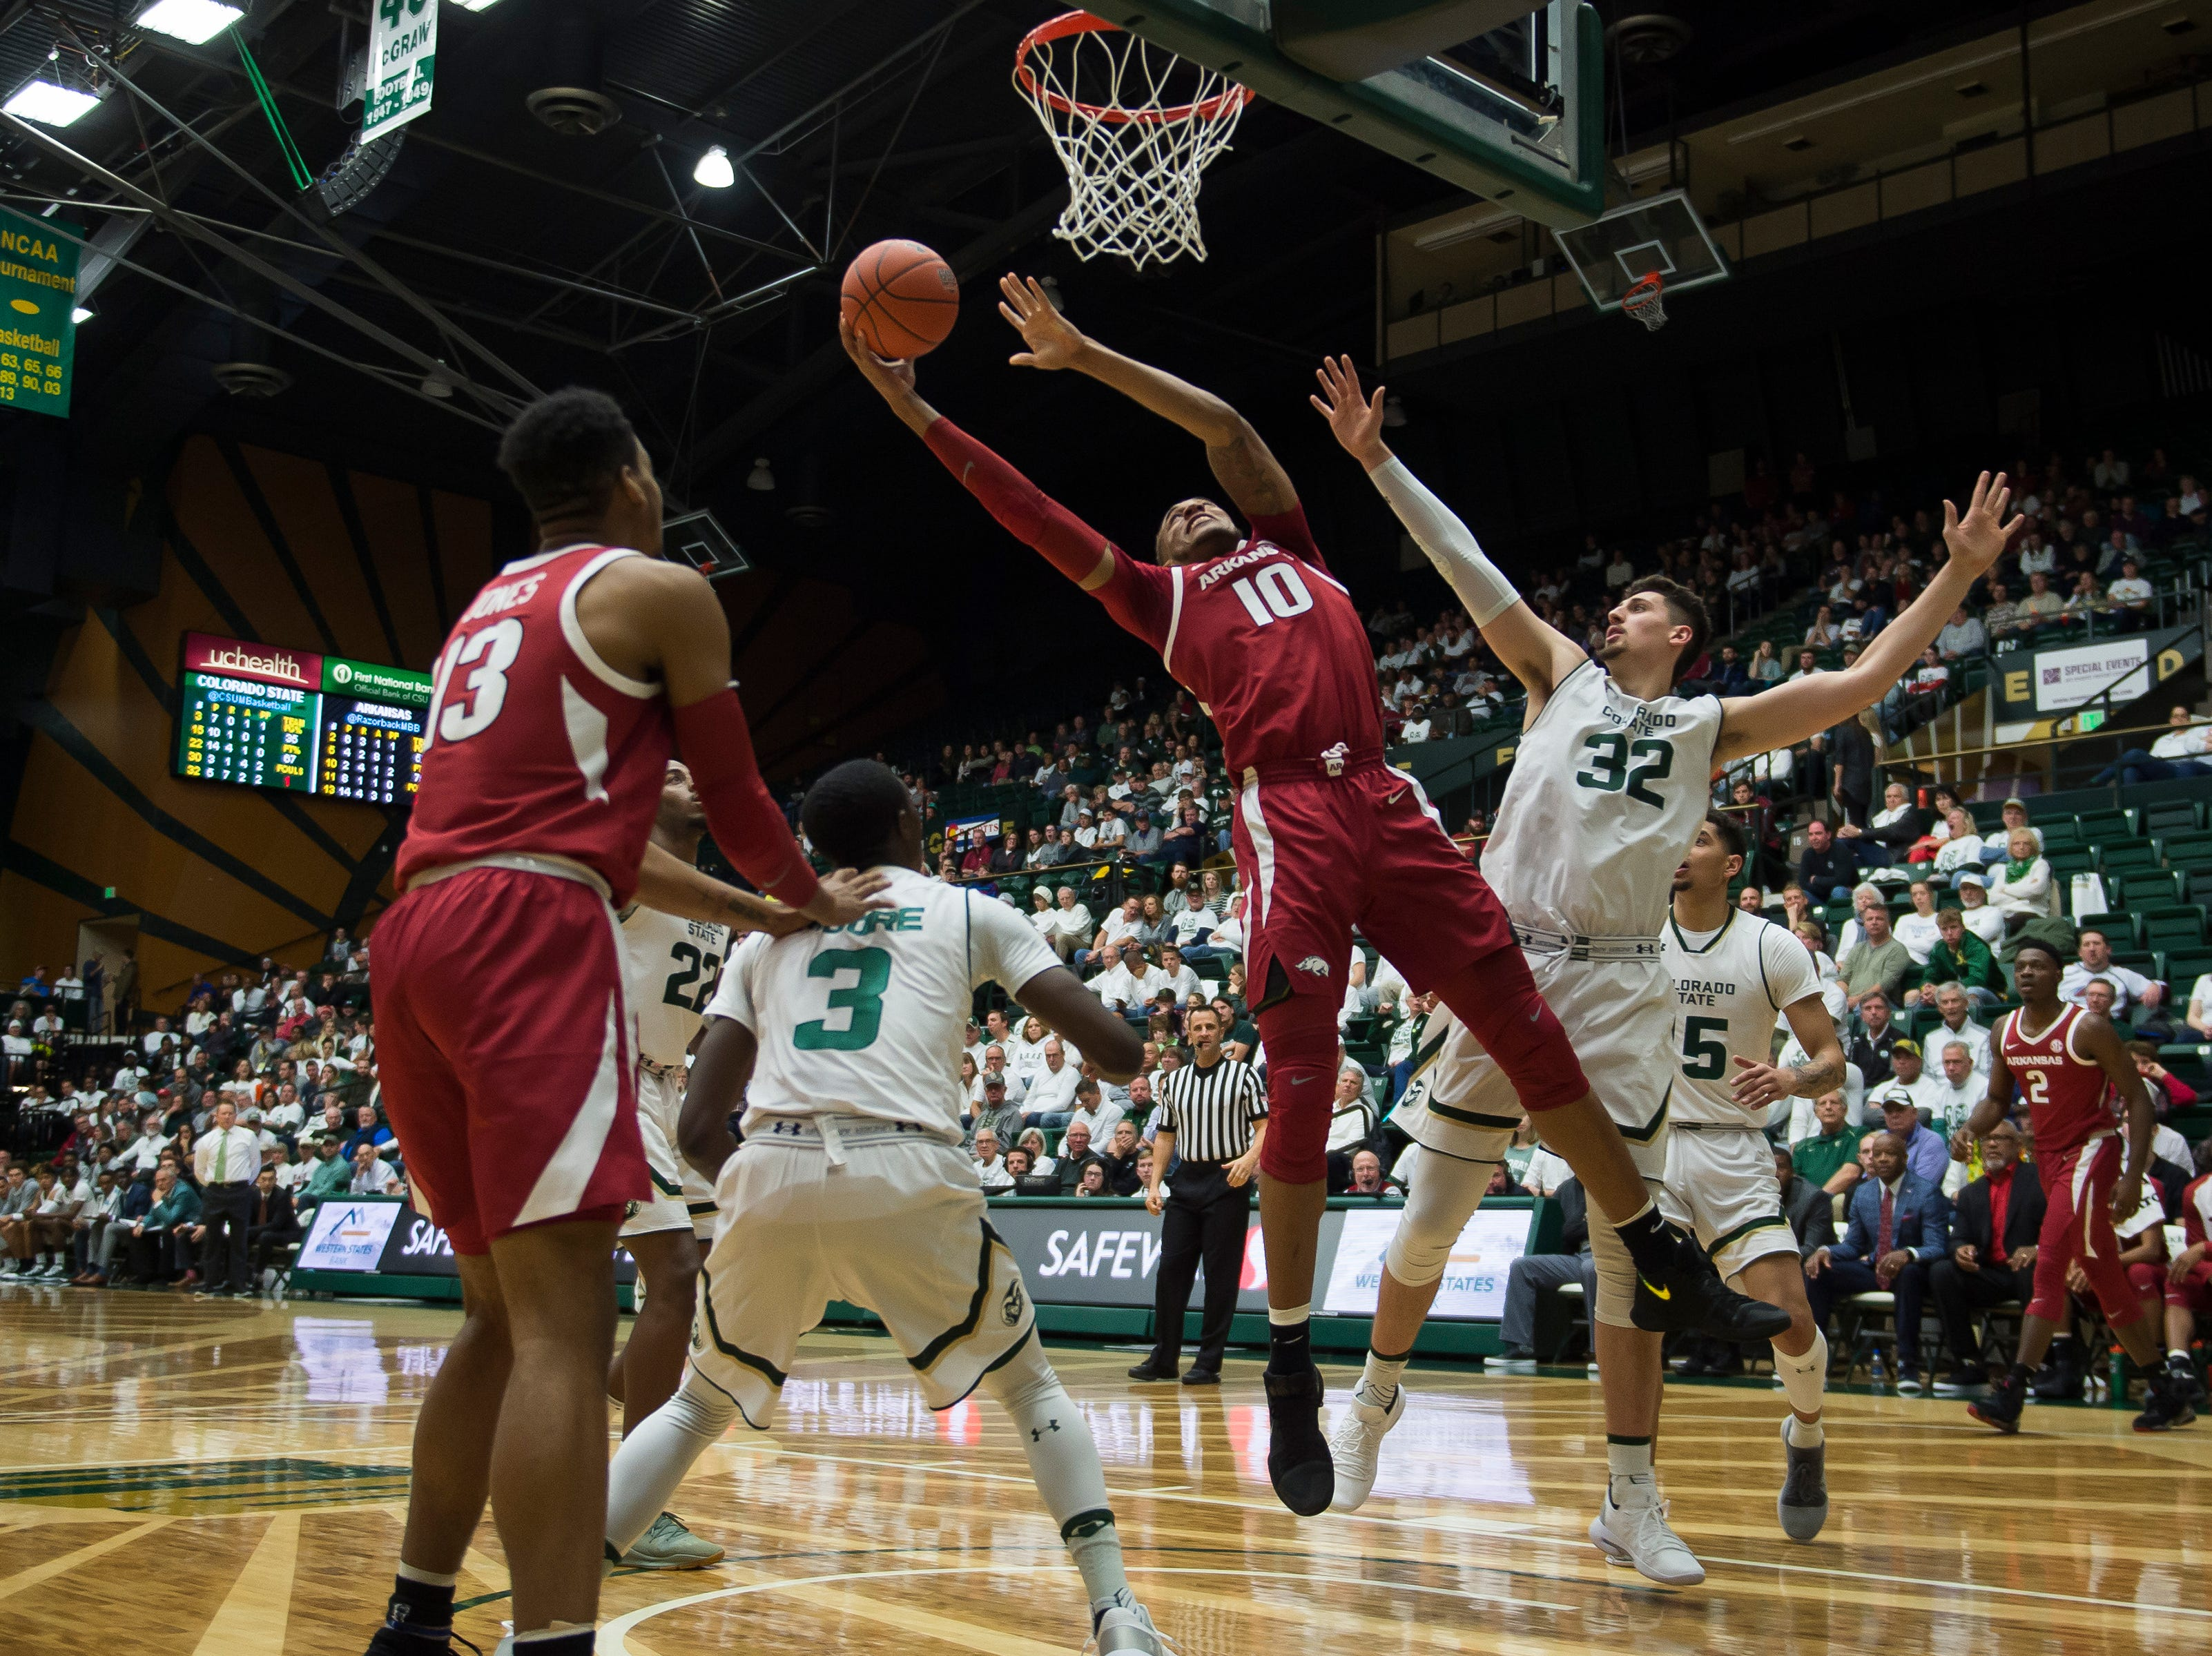 Arkansas sophomore forward Daniel Gafford (10) stretches out for a shot past Colorado State University junior center Nico Carvacho (32) on Wednesday, Dec. 5, 2018, Moby Arena in Fort Collins, Colo.